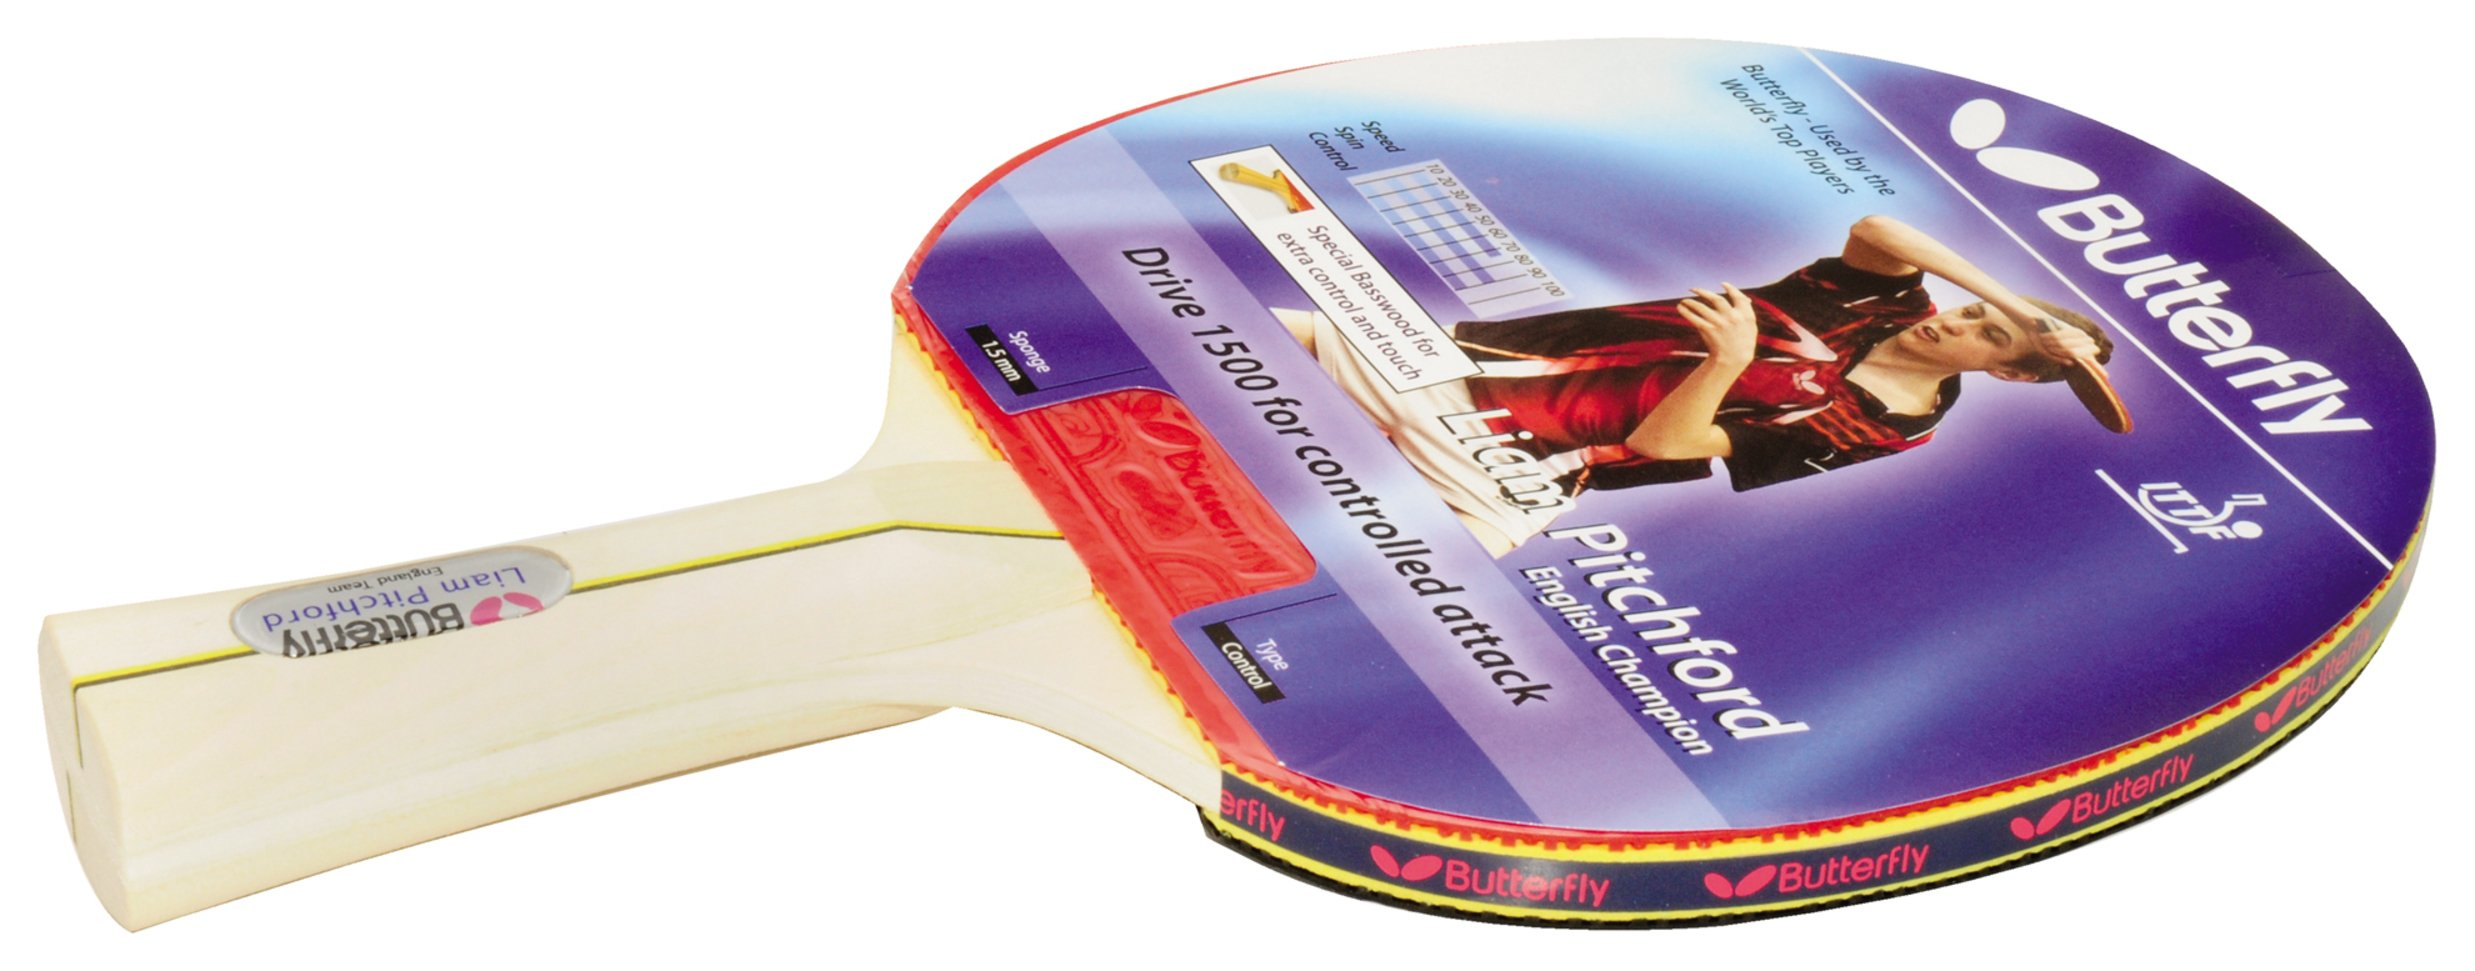 Image of Butterfly Liam Pitchford 1500 Table Tennis Bat